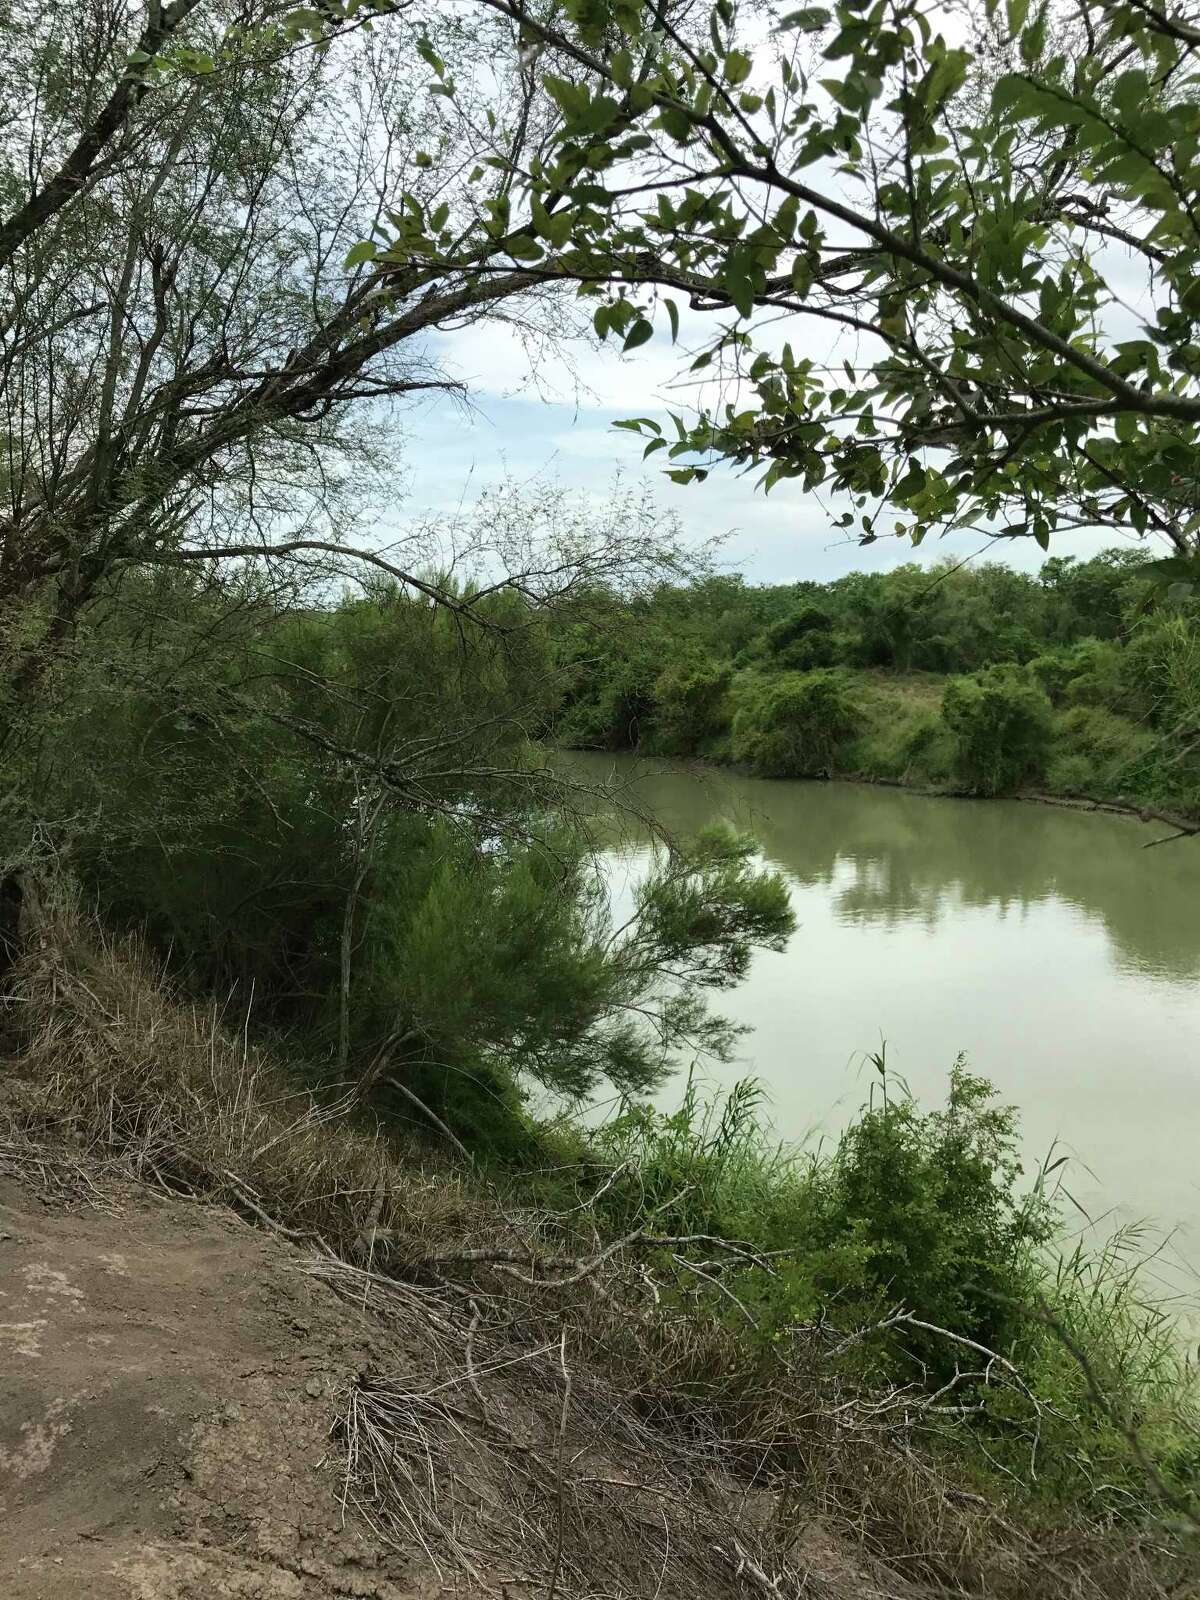 The riparian corridor along the Rio Grande is one of the most biologically diverse areas in the nation.